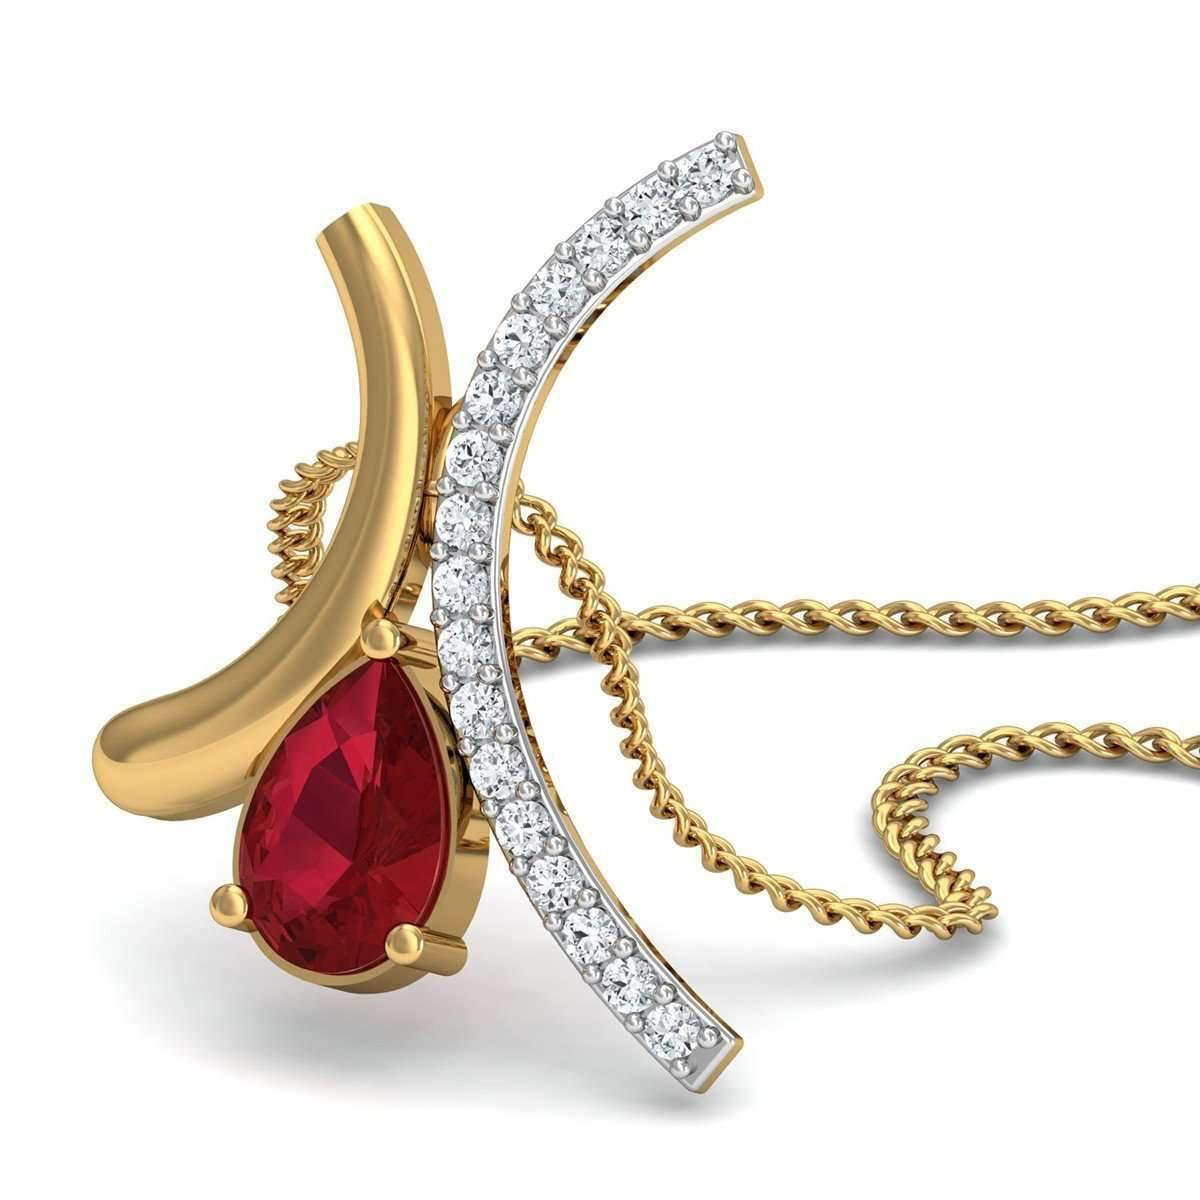 Diamoire Jewels Pave Set Diamond and Pear Cut Ruby Pendant in 14kt Yellow Gold fPeWVpvY